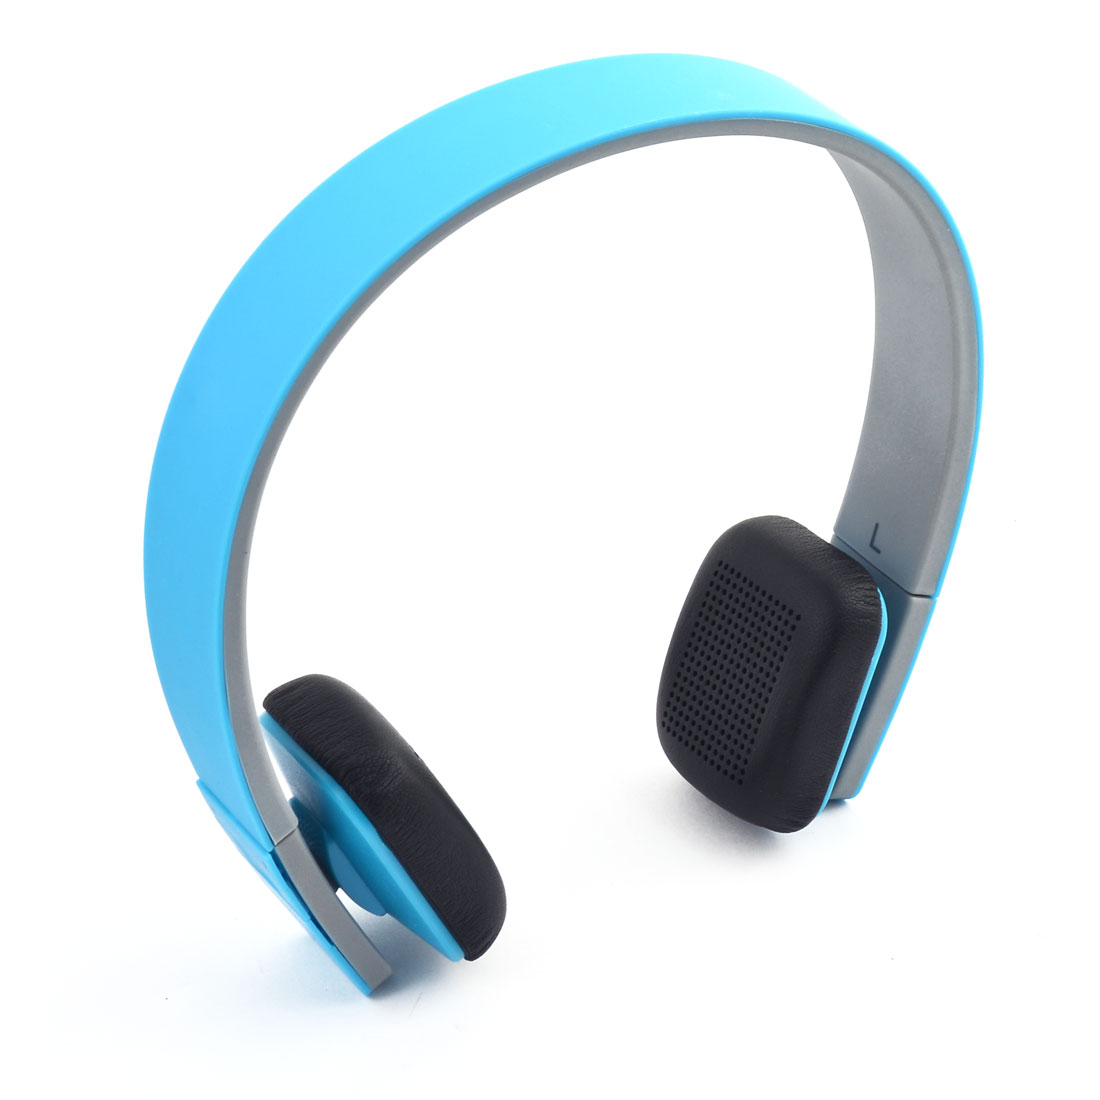 Tablet PC Noise Reduction Wireless bluetooth Stereo Headphones Headset Blue w USB Cable